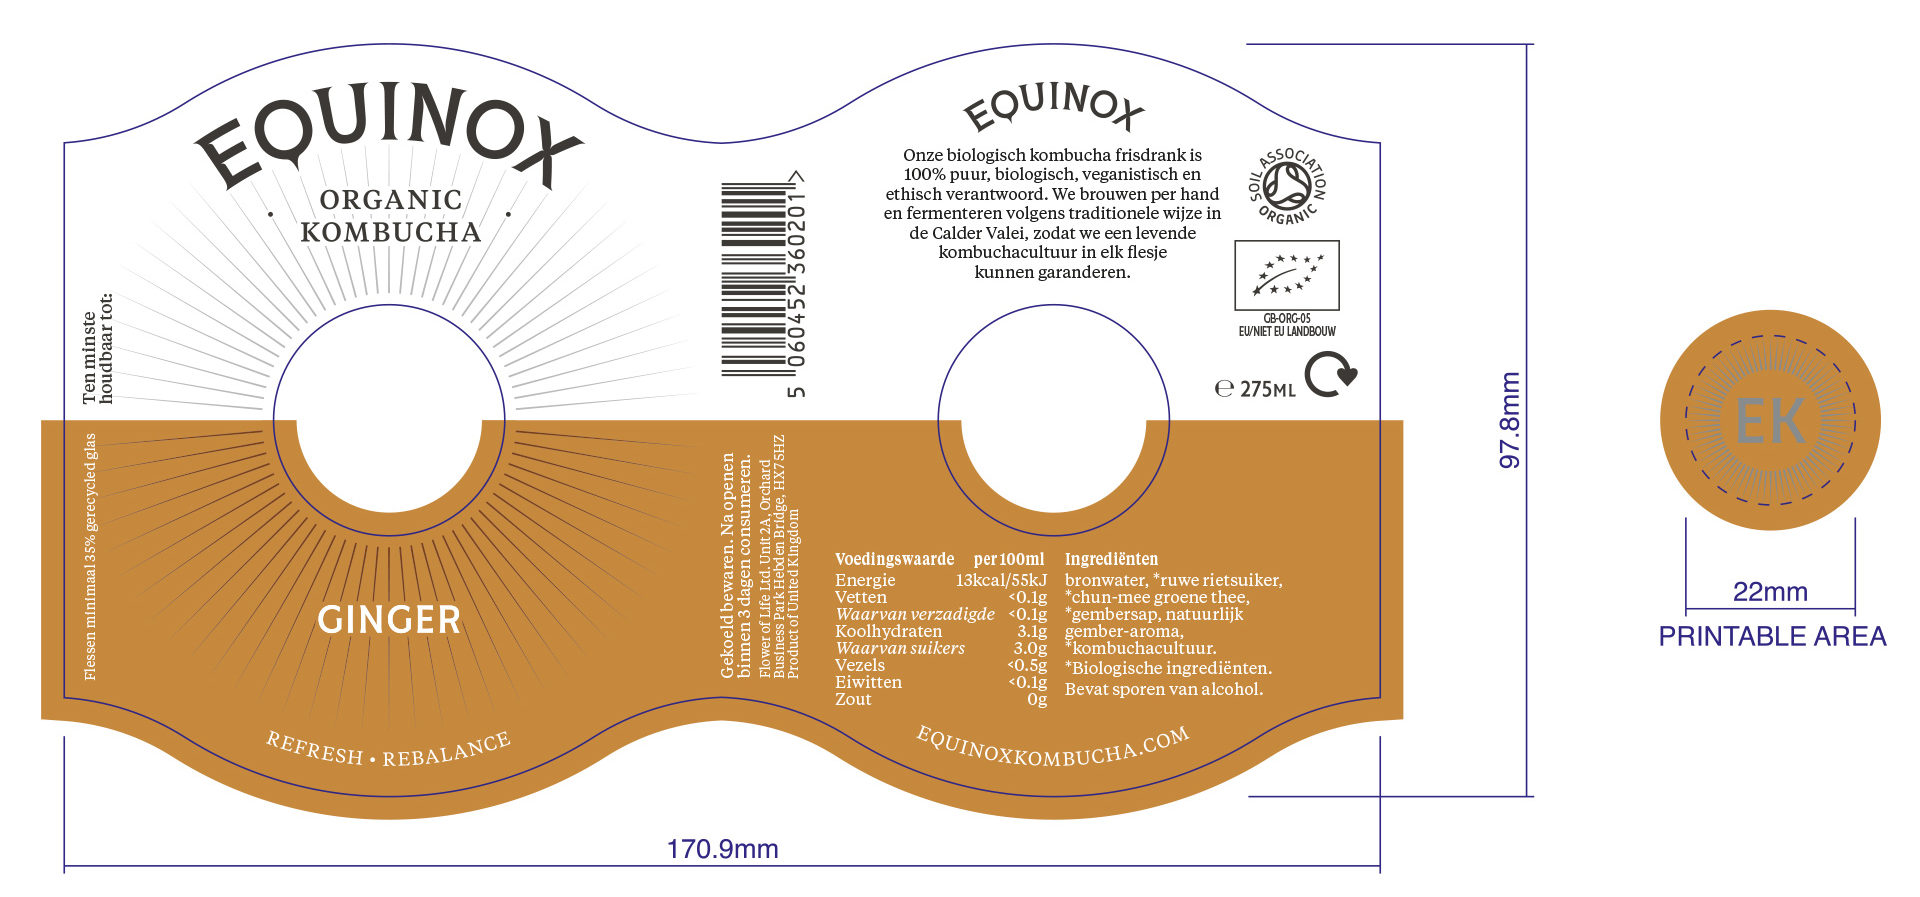 packaging-artwork-repro-drink-bottle-equinox